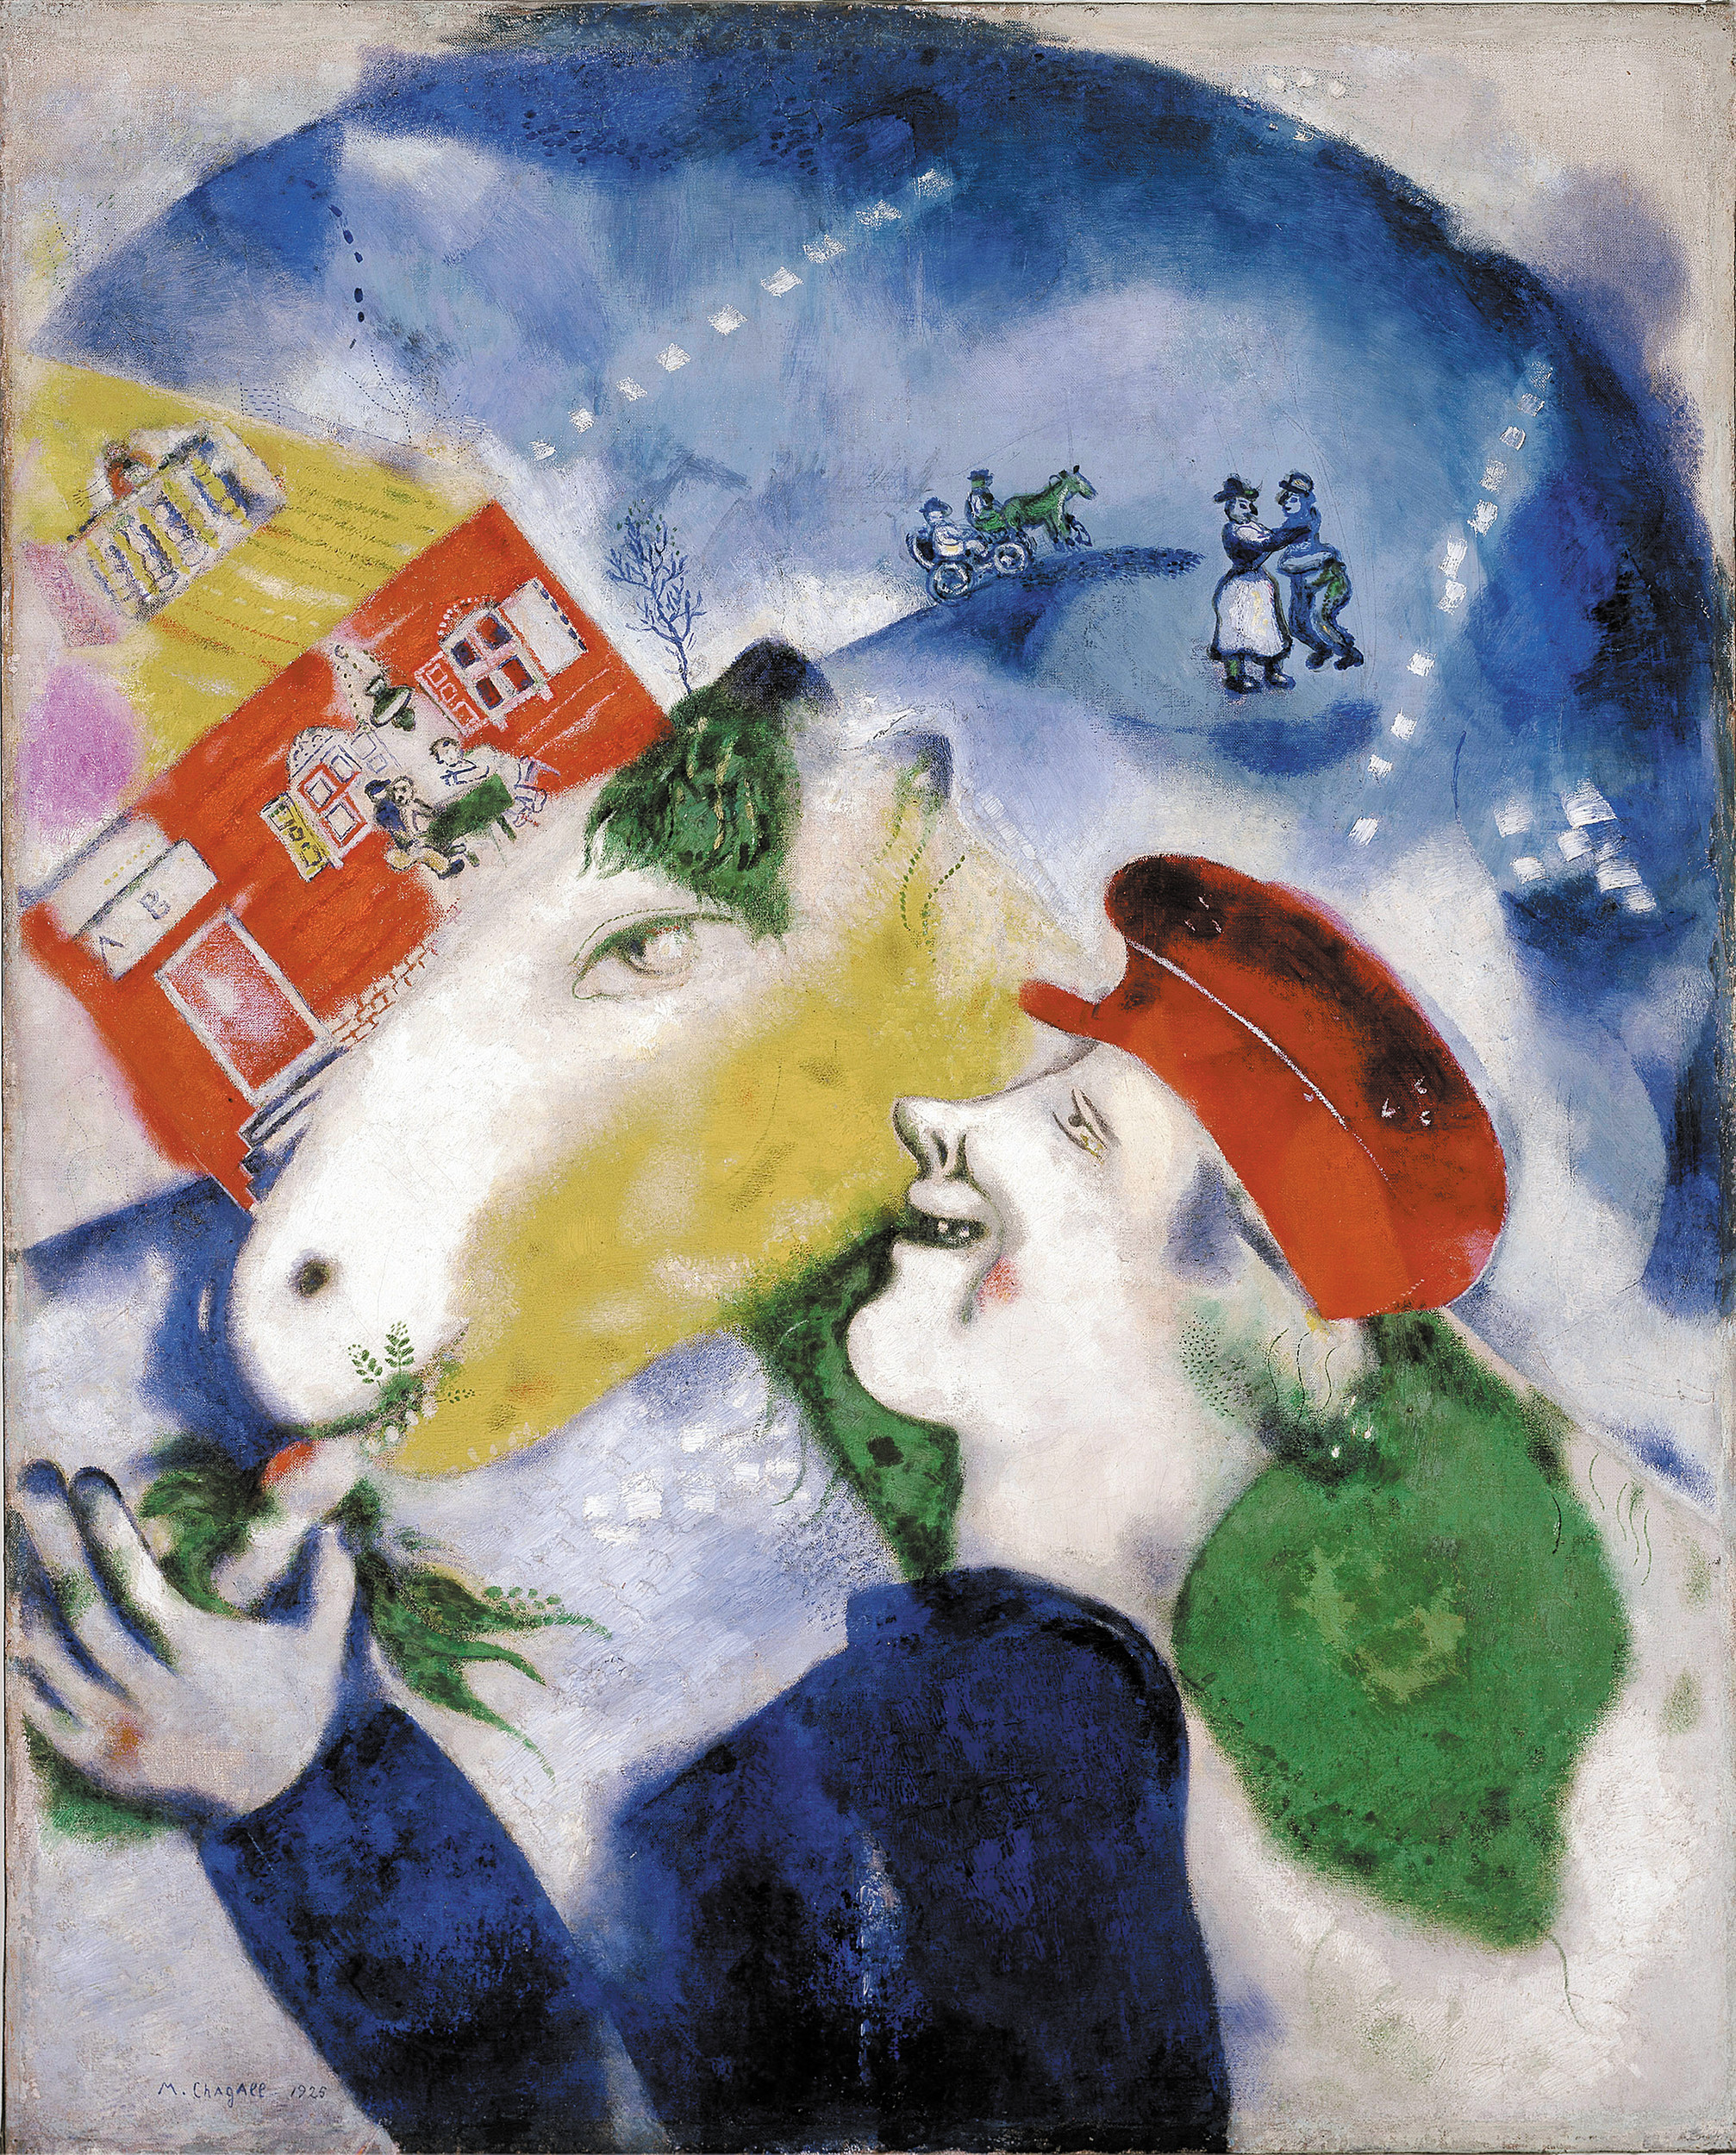 """La vie paysanne (Peasant Life)"" 1925 by Marc Chagall (French, born Russia 1887-1985) is a 39-inch by 31-inch oil on canvas. It appears in the Modern Masters exhibit at the Denver Art Museum through June 8."